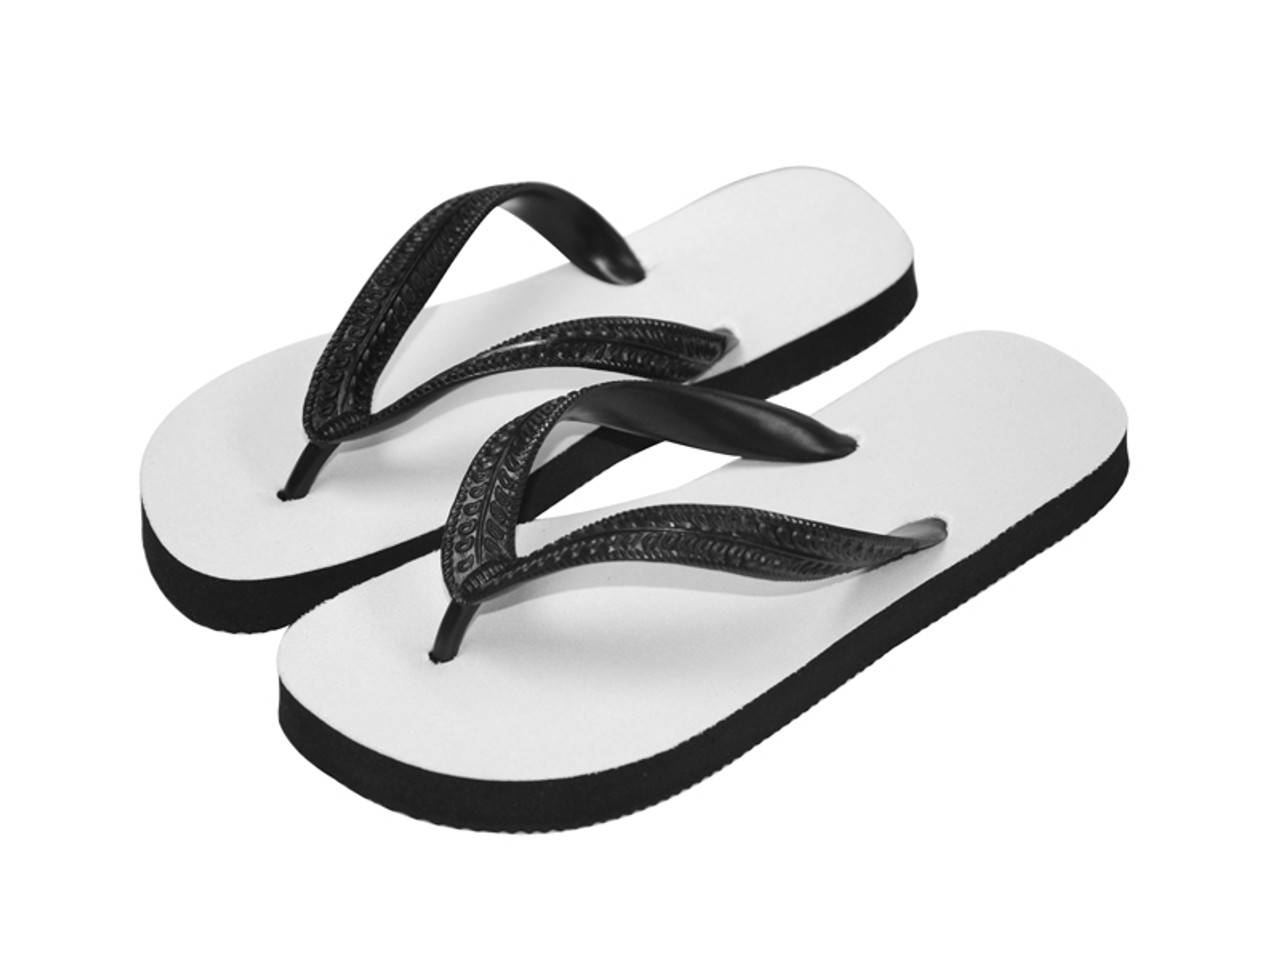 180a1d848 Sublimation Flip Flops with 3 Strap Color Options and Black Base ...